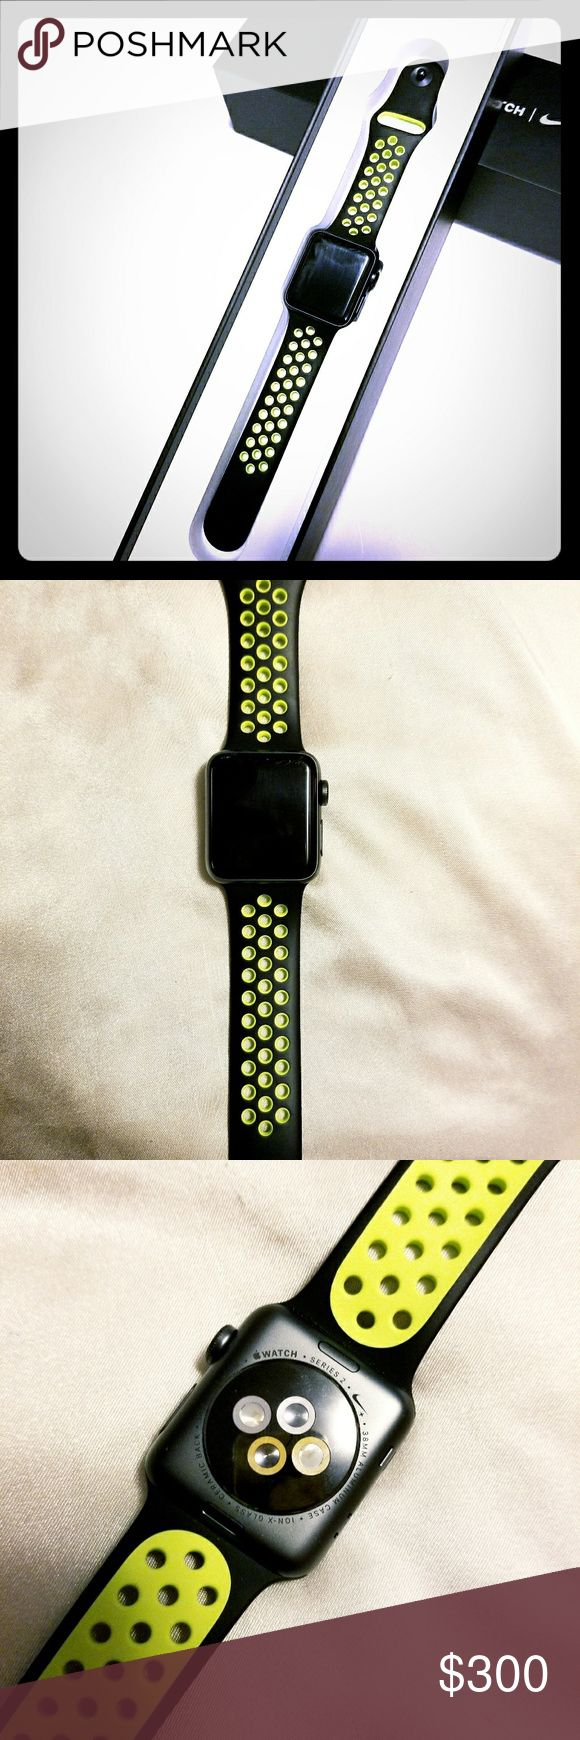 ⌚APPLE WATCH⌚ SERIES 2 NIKE PLUS EDITION! ⌚APPLE WATCH⌚SERIES 2 NIKE PLUS EDITION! GREAT PRE OWNED CONDITION. VERY SMALL SCRATCHES ON THE TOP EDGE. CAN NOT SEE WHEN WATCH IS ON, SHOWN IN PICTURES! ALL OROGINAL ACCESSORIES, OWNERS MANUAL, AND BOX INCLUDED! WORKS LIKE NEW,  FULLY FUNCTIONAL! Nike Accessories Watches